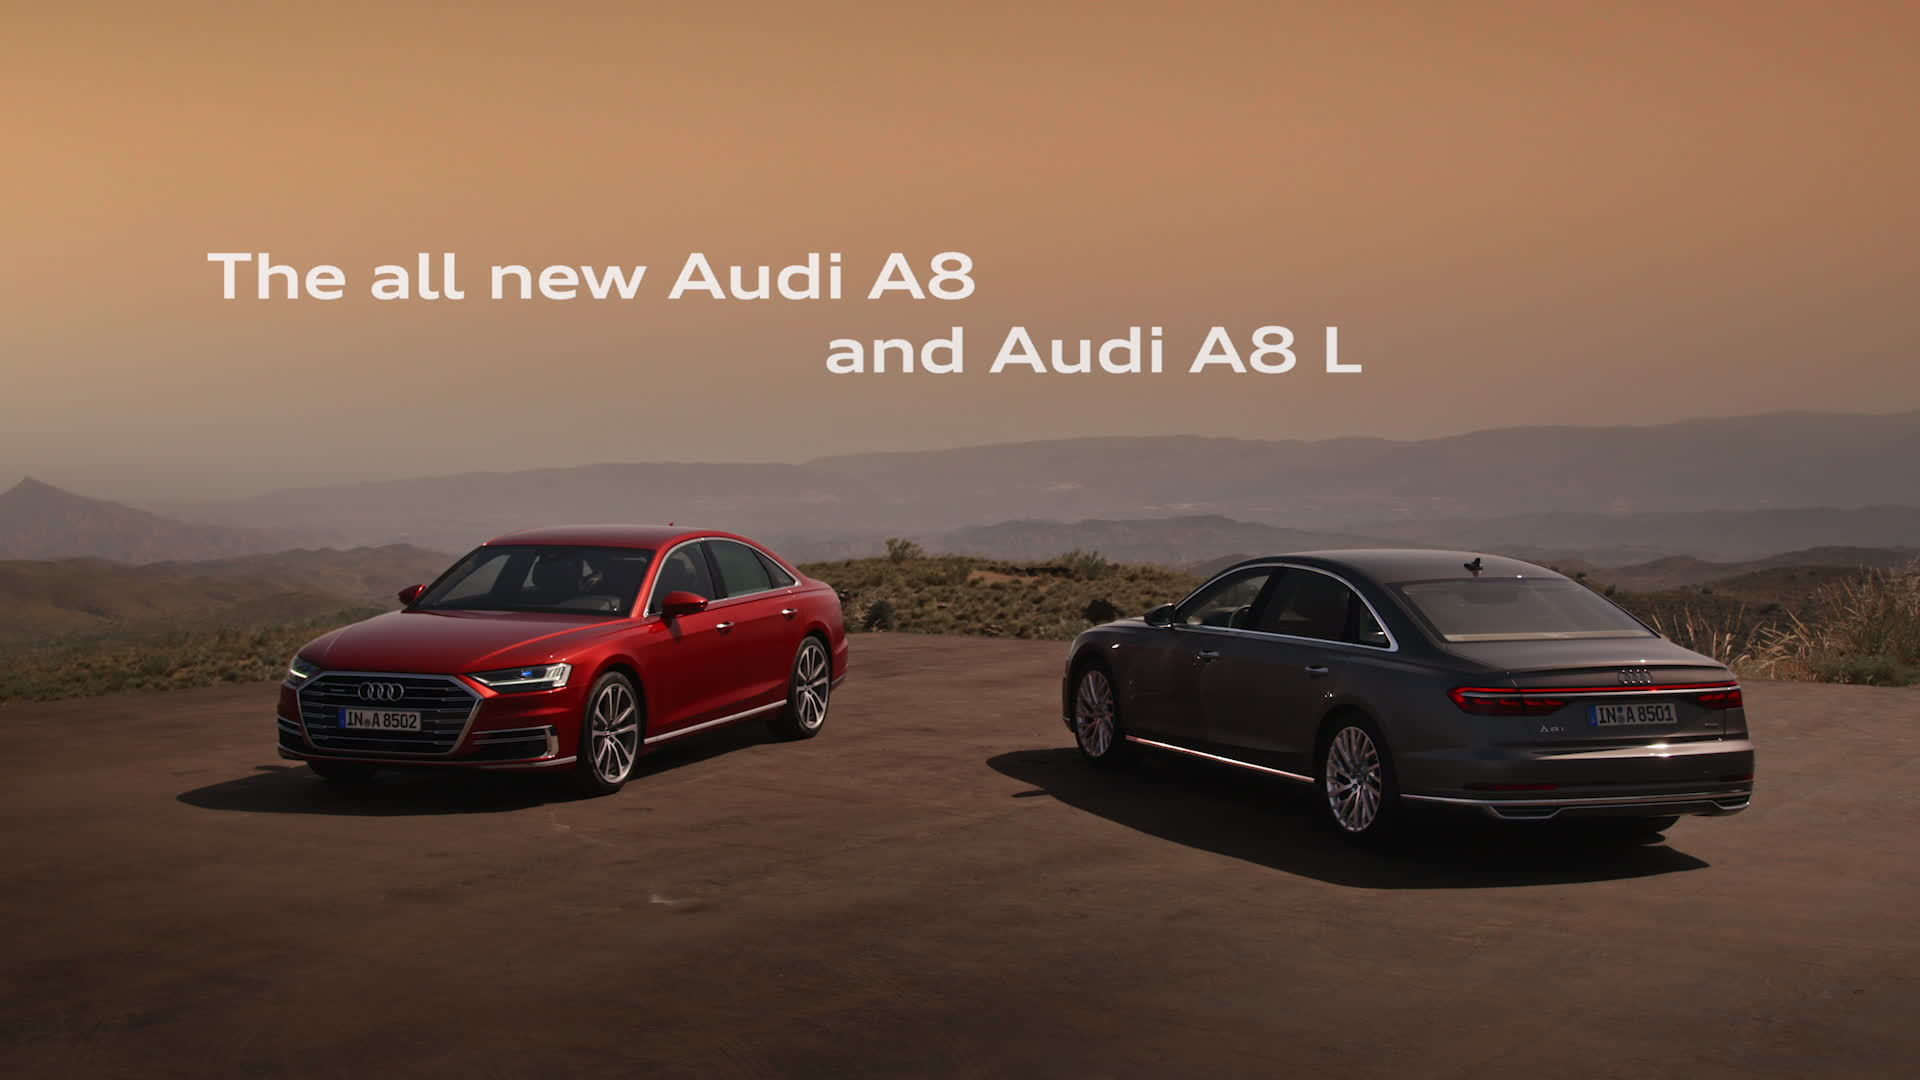 The all new Audi A8 and Audi A8 L